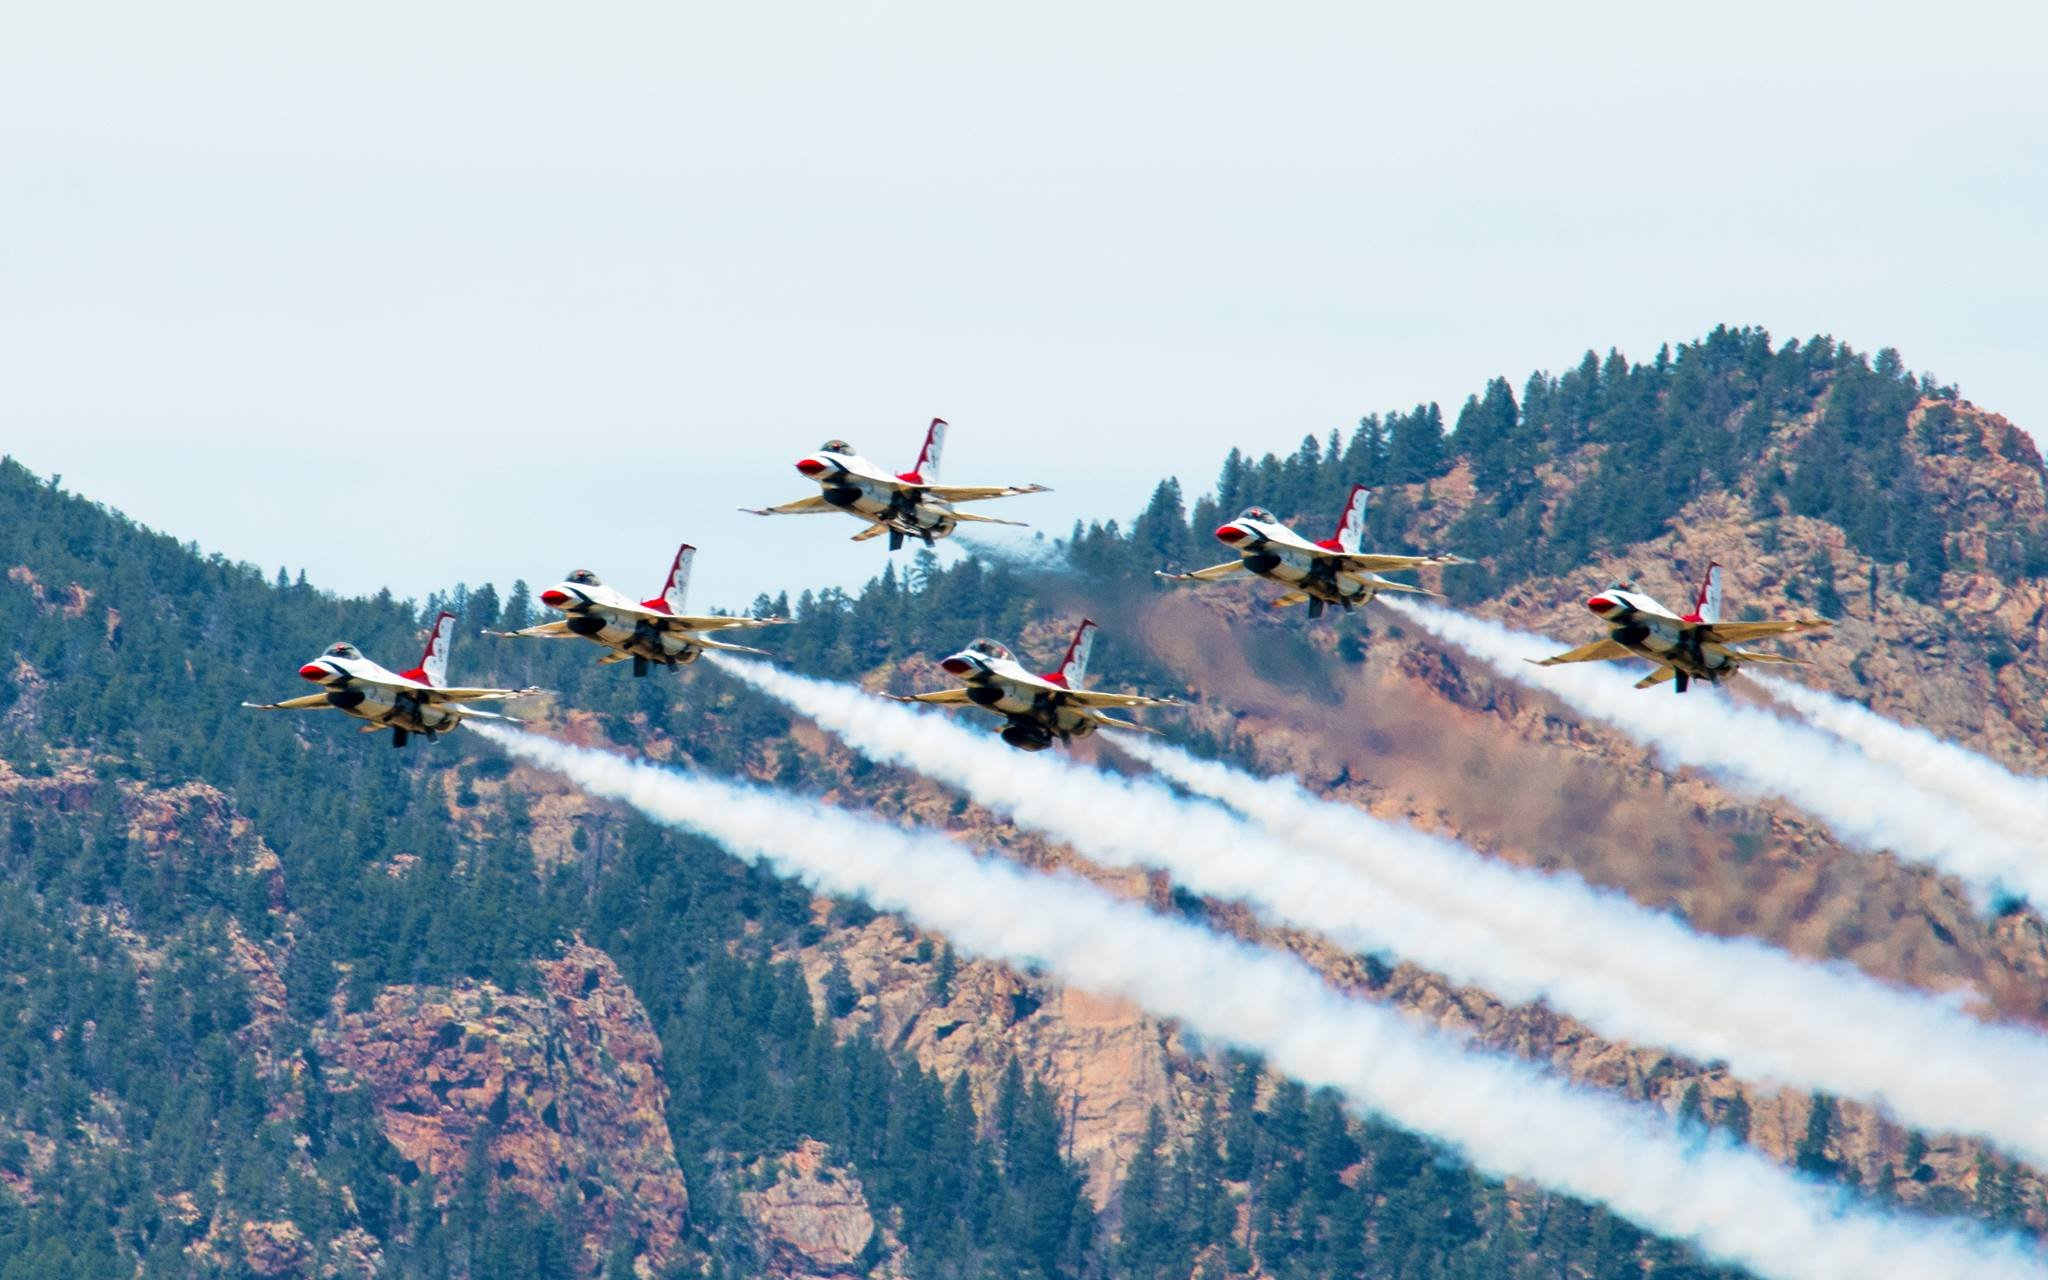 Thunderbirds by Frank Manno